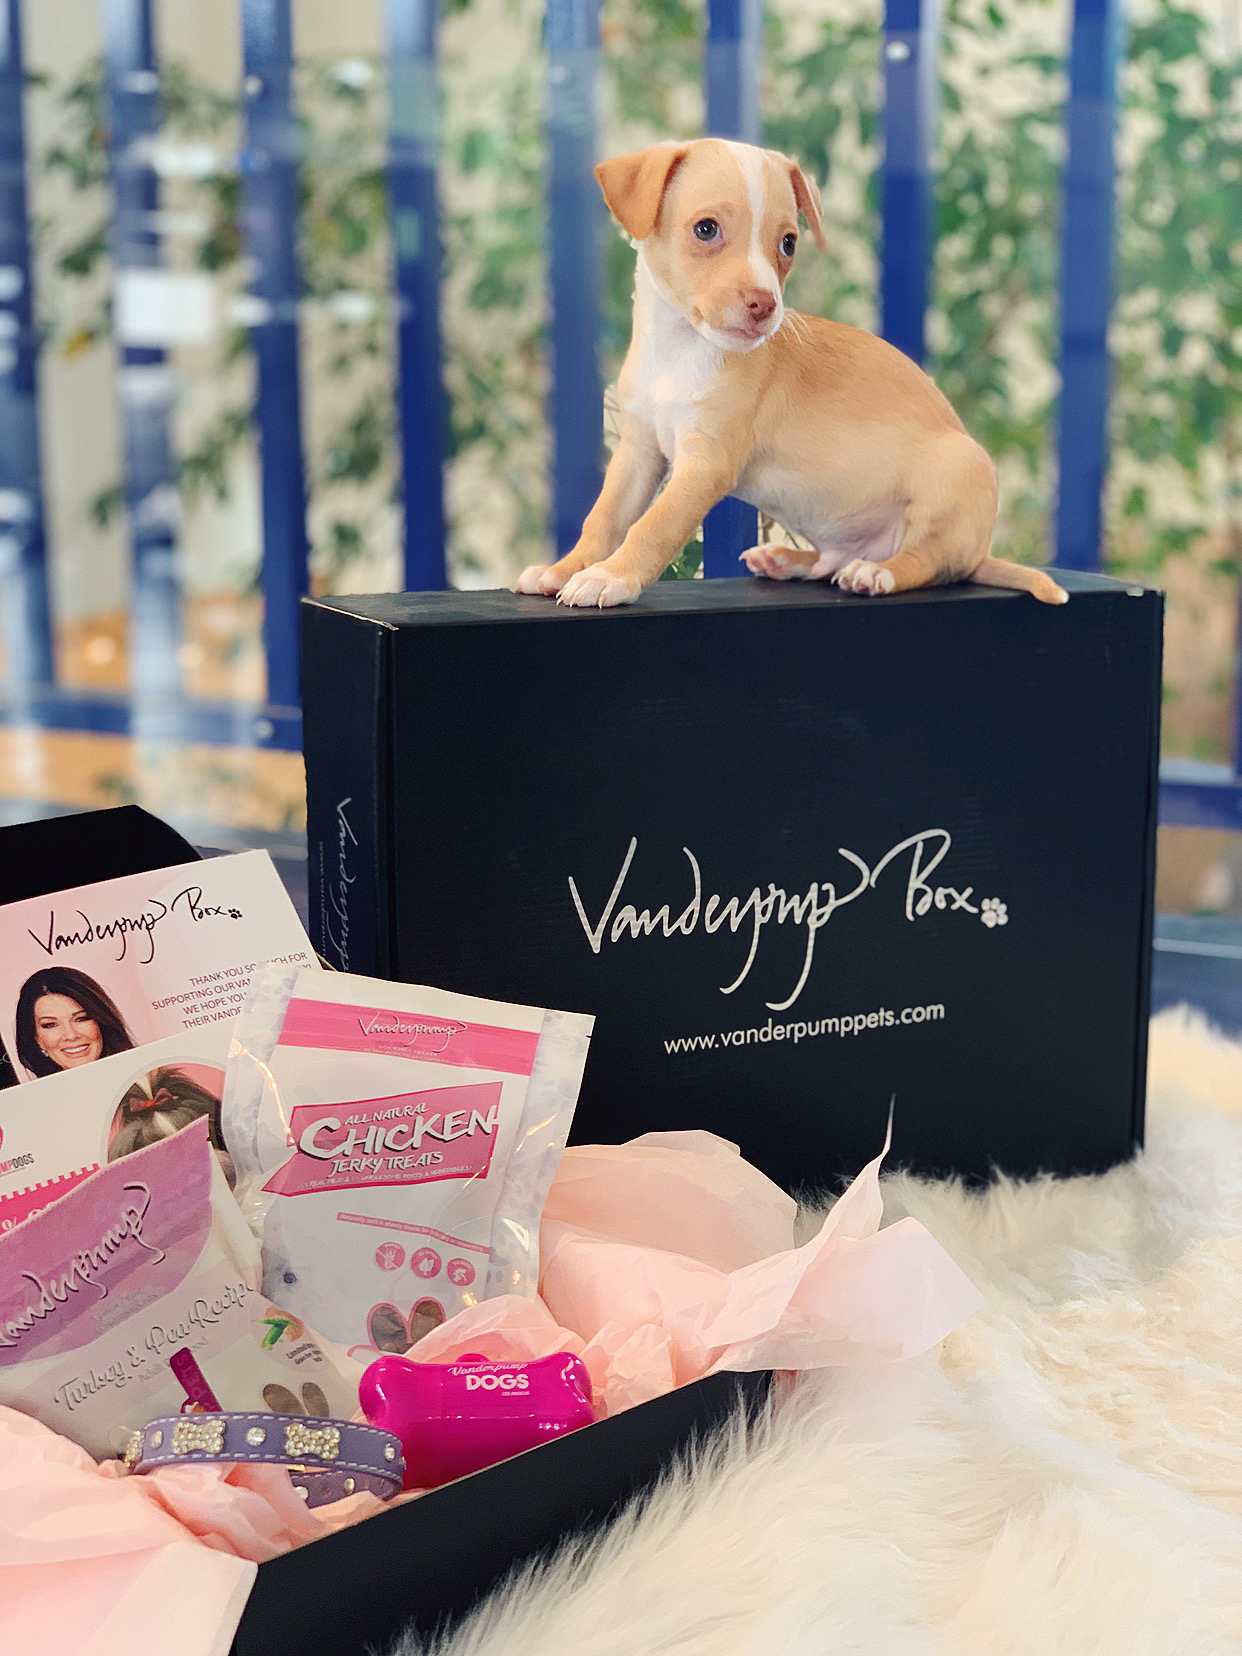 v-day hotel package for a dog